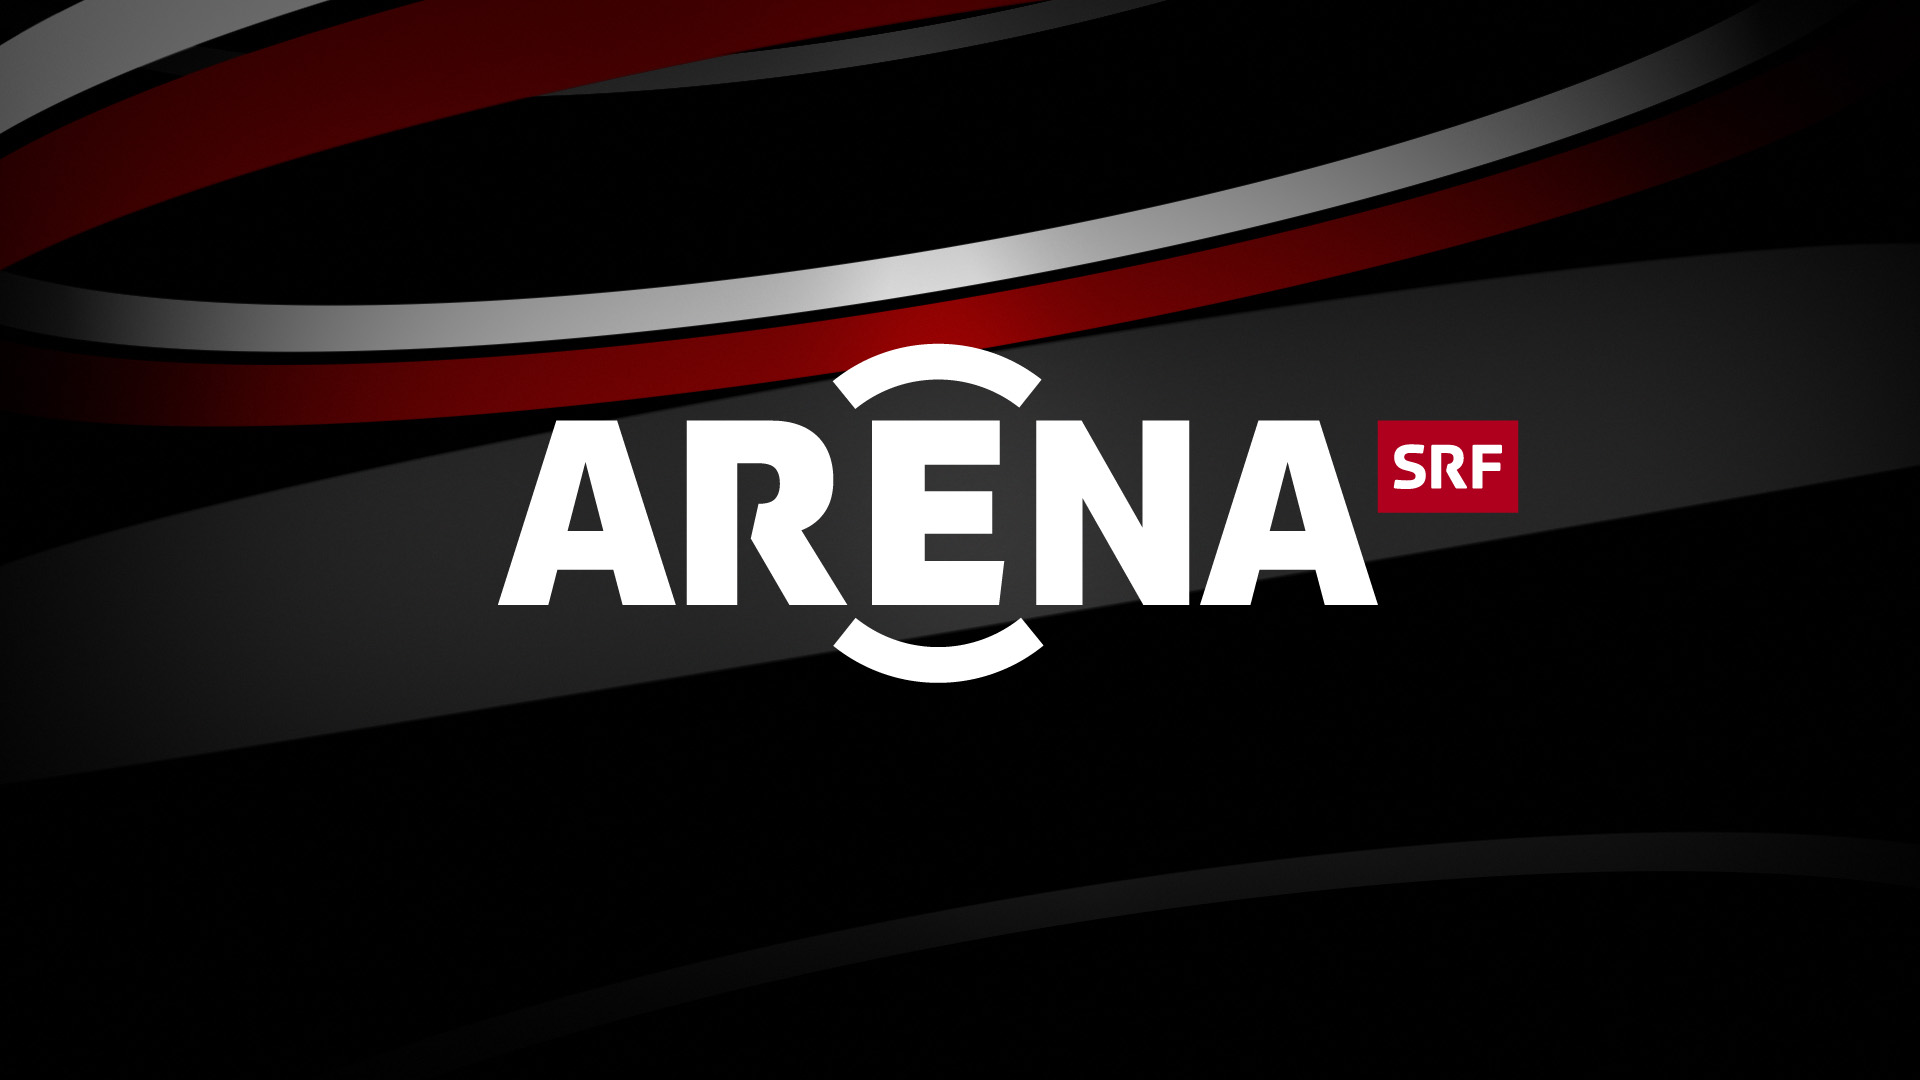 SRF Arena On Air Design, Brand Design, Opener, Wipes, Lower Thirds, Graphic Backgrounds, Screen Loops. Motion Design, Film Editing, Michael Frei, Zurich, Switzerland.